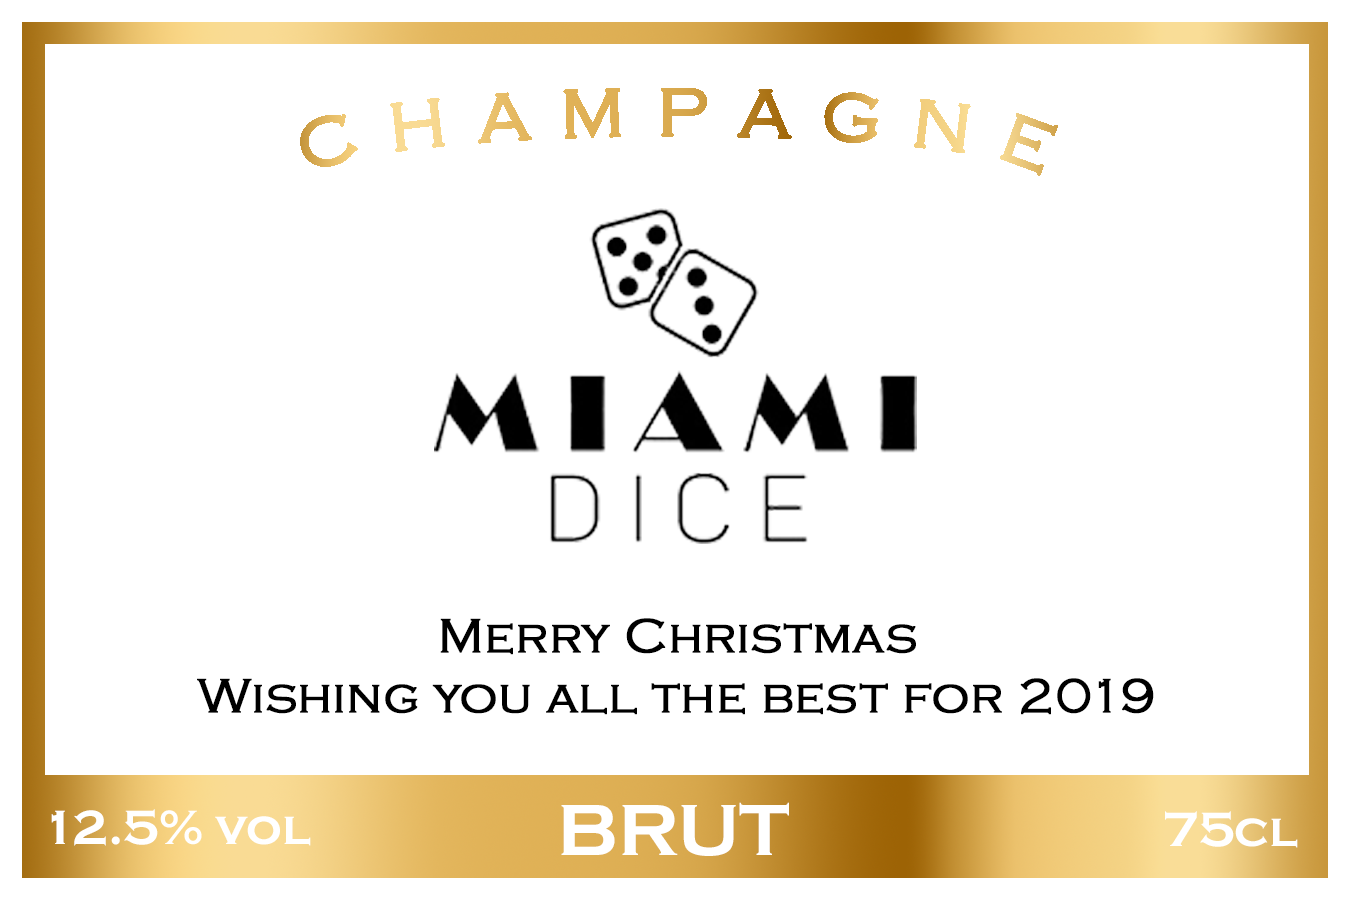 Miami Dice Branded Champagne Label